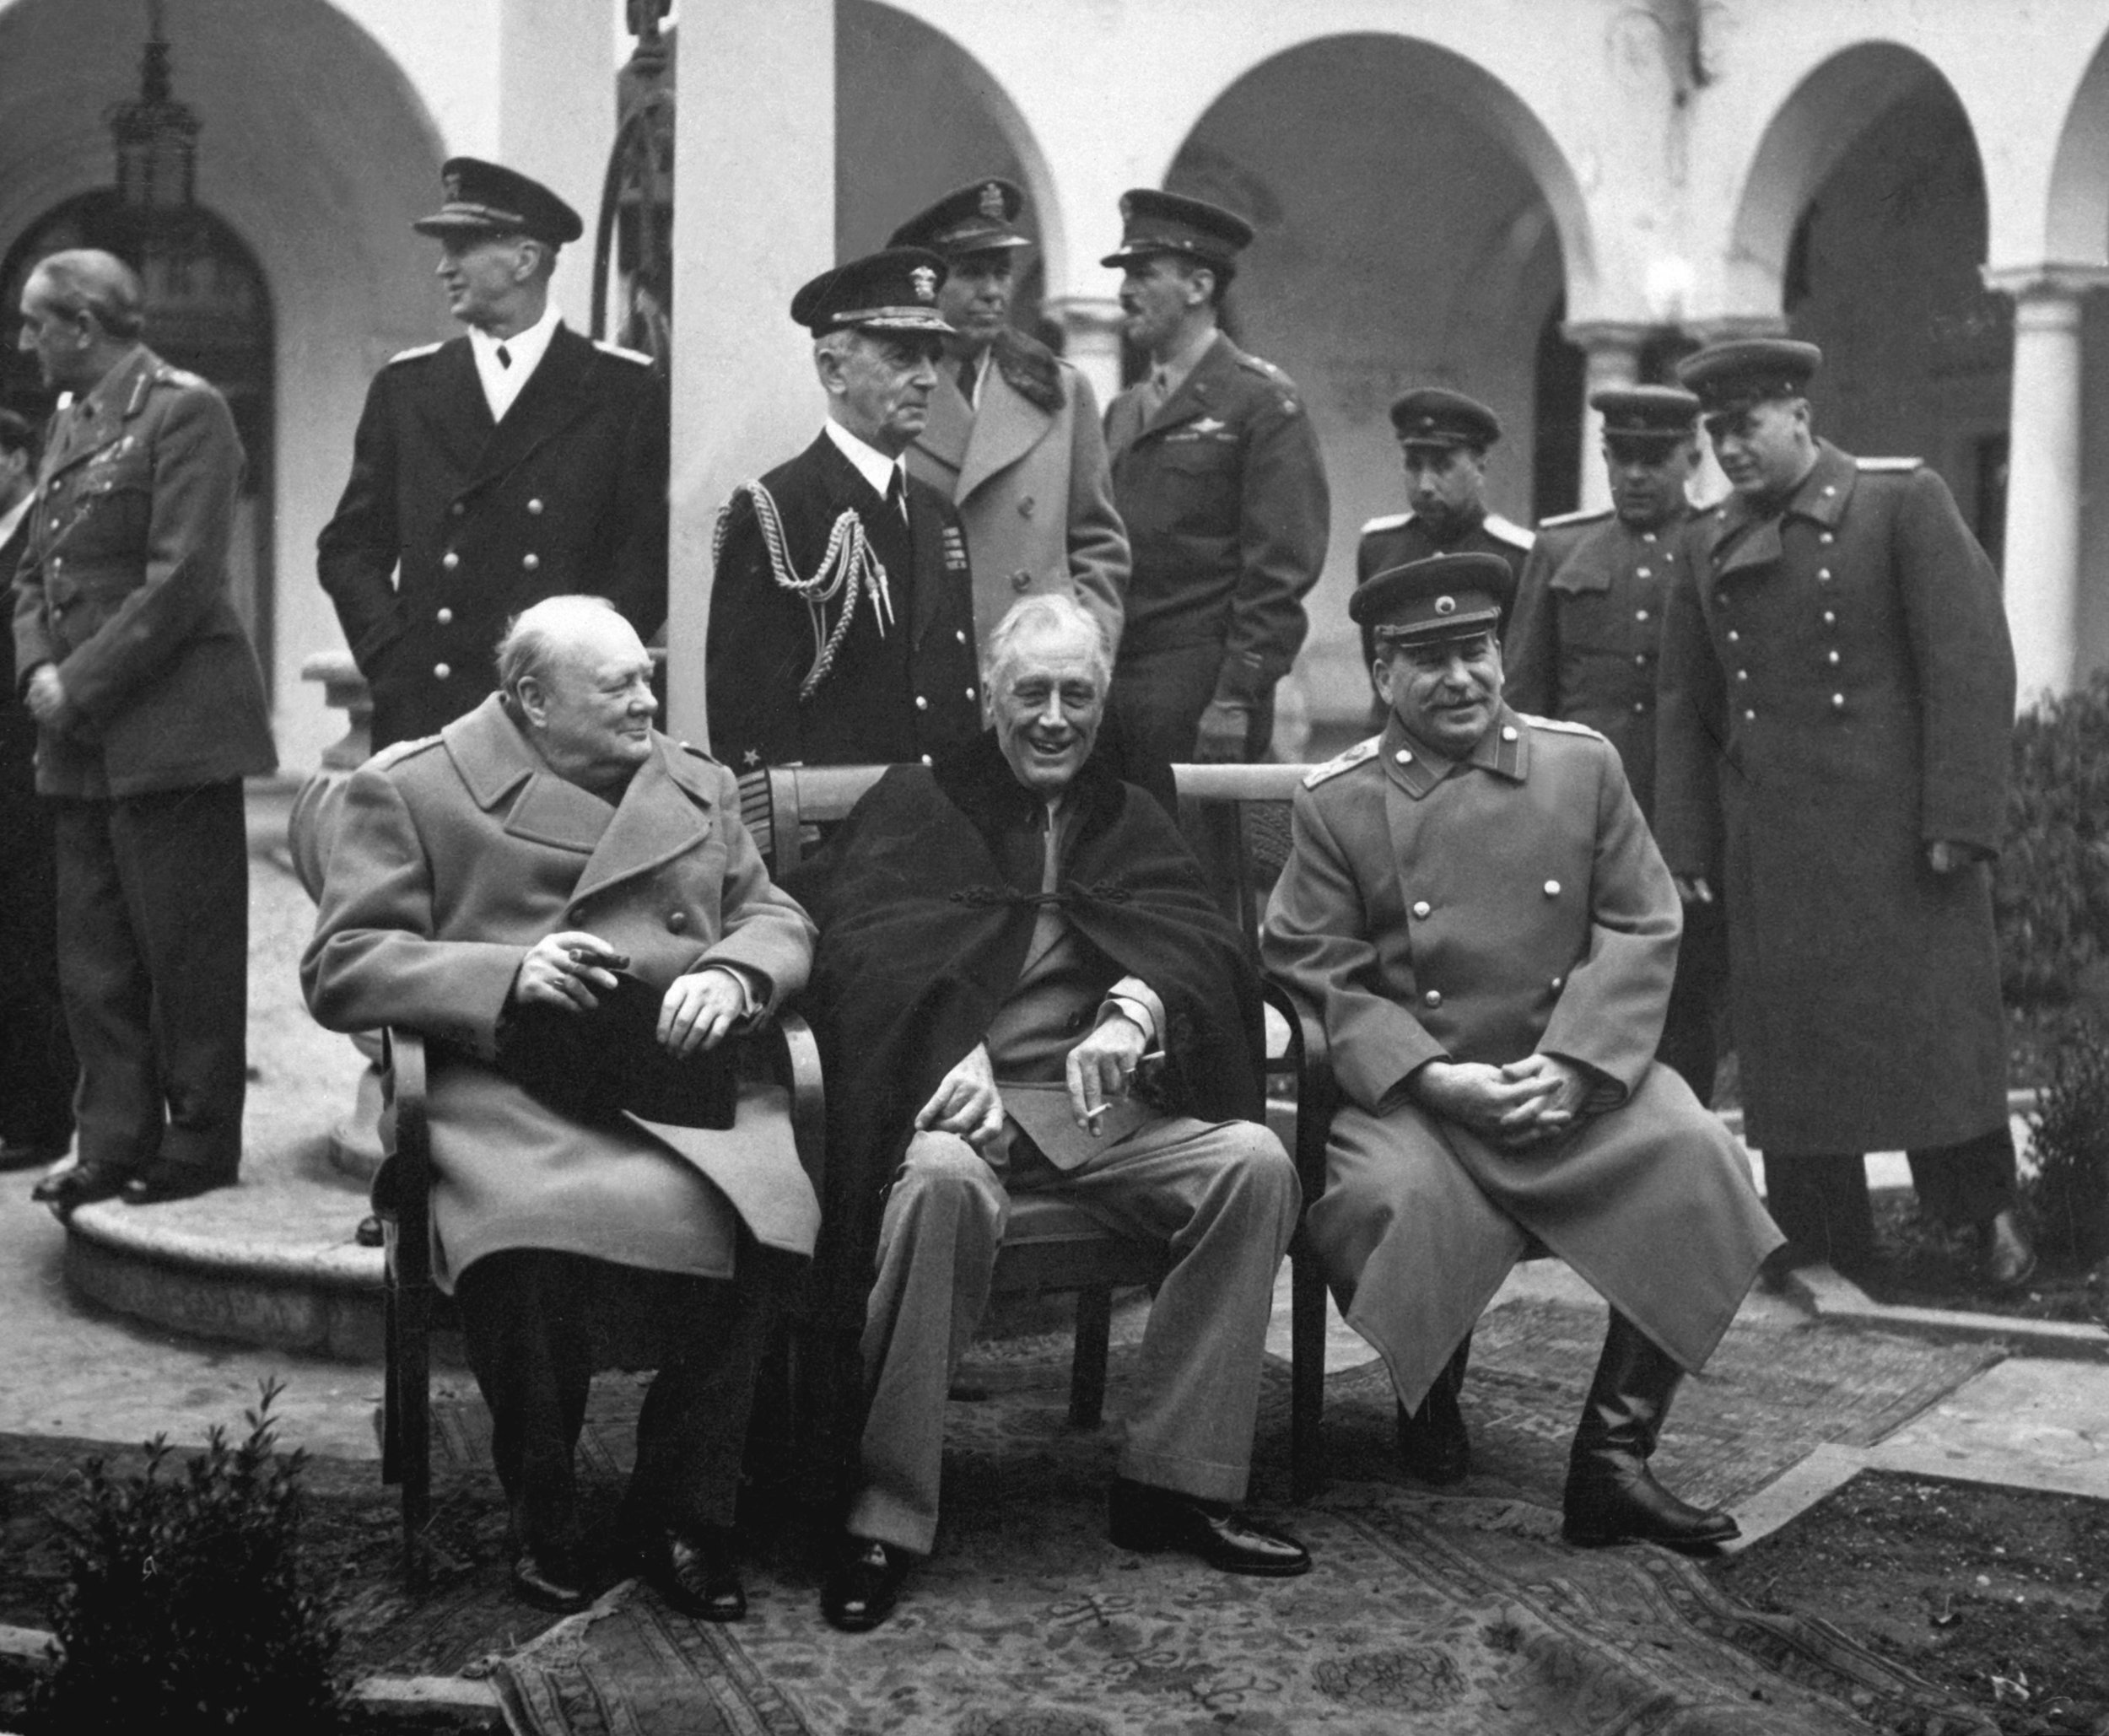 Winston Churchill, Franklin D. Roosevelt and Josef Stalin discuss the postwar world order at Yalta in 1945. Some of President Donald J. Trump's supporters have compared this to Trump's meeting with Russian President Vladimir Putin in Helsinki. Yeah, right.